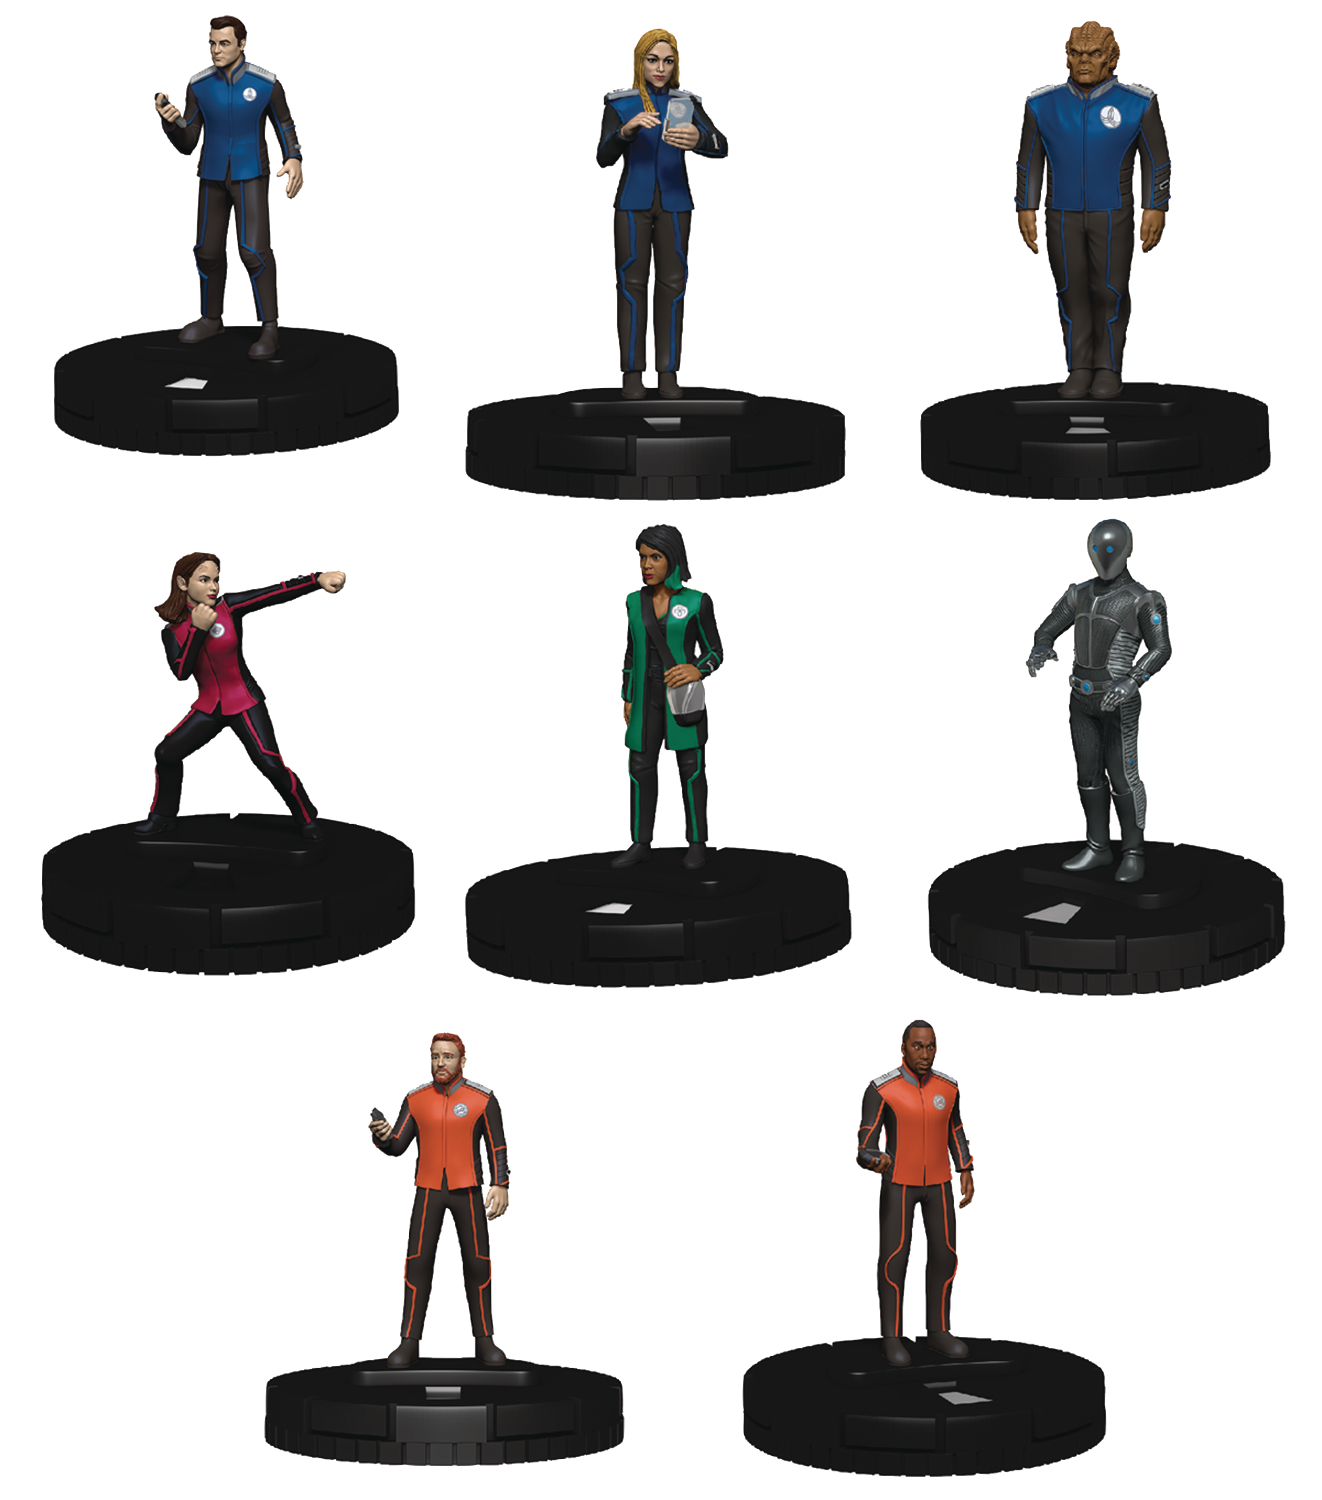 ORVILLE HEROCLIX 2-PLAYER STARTER SET